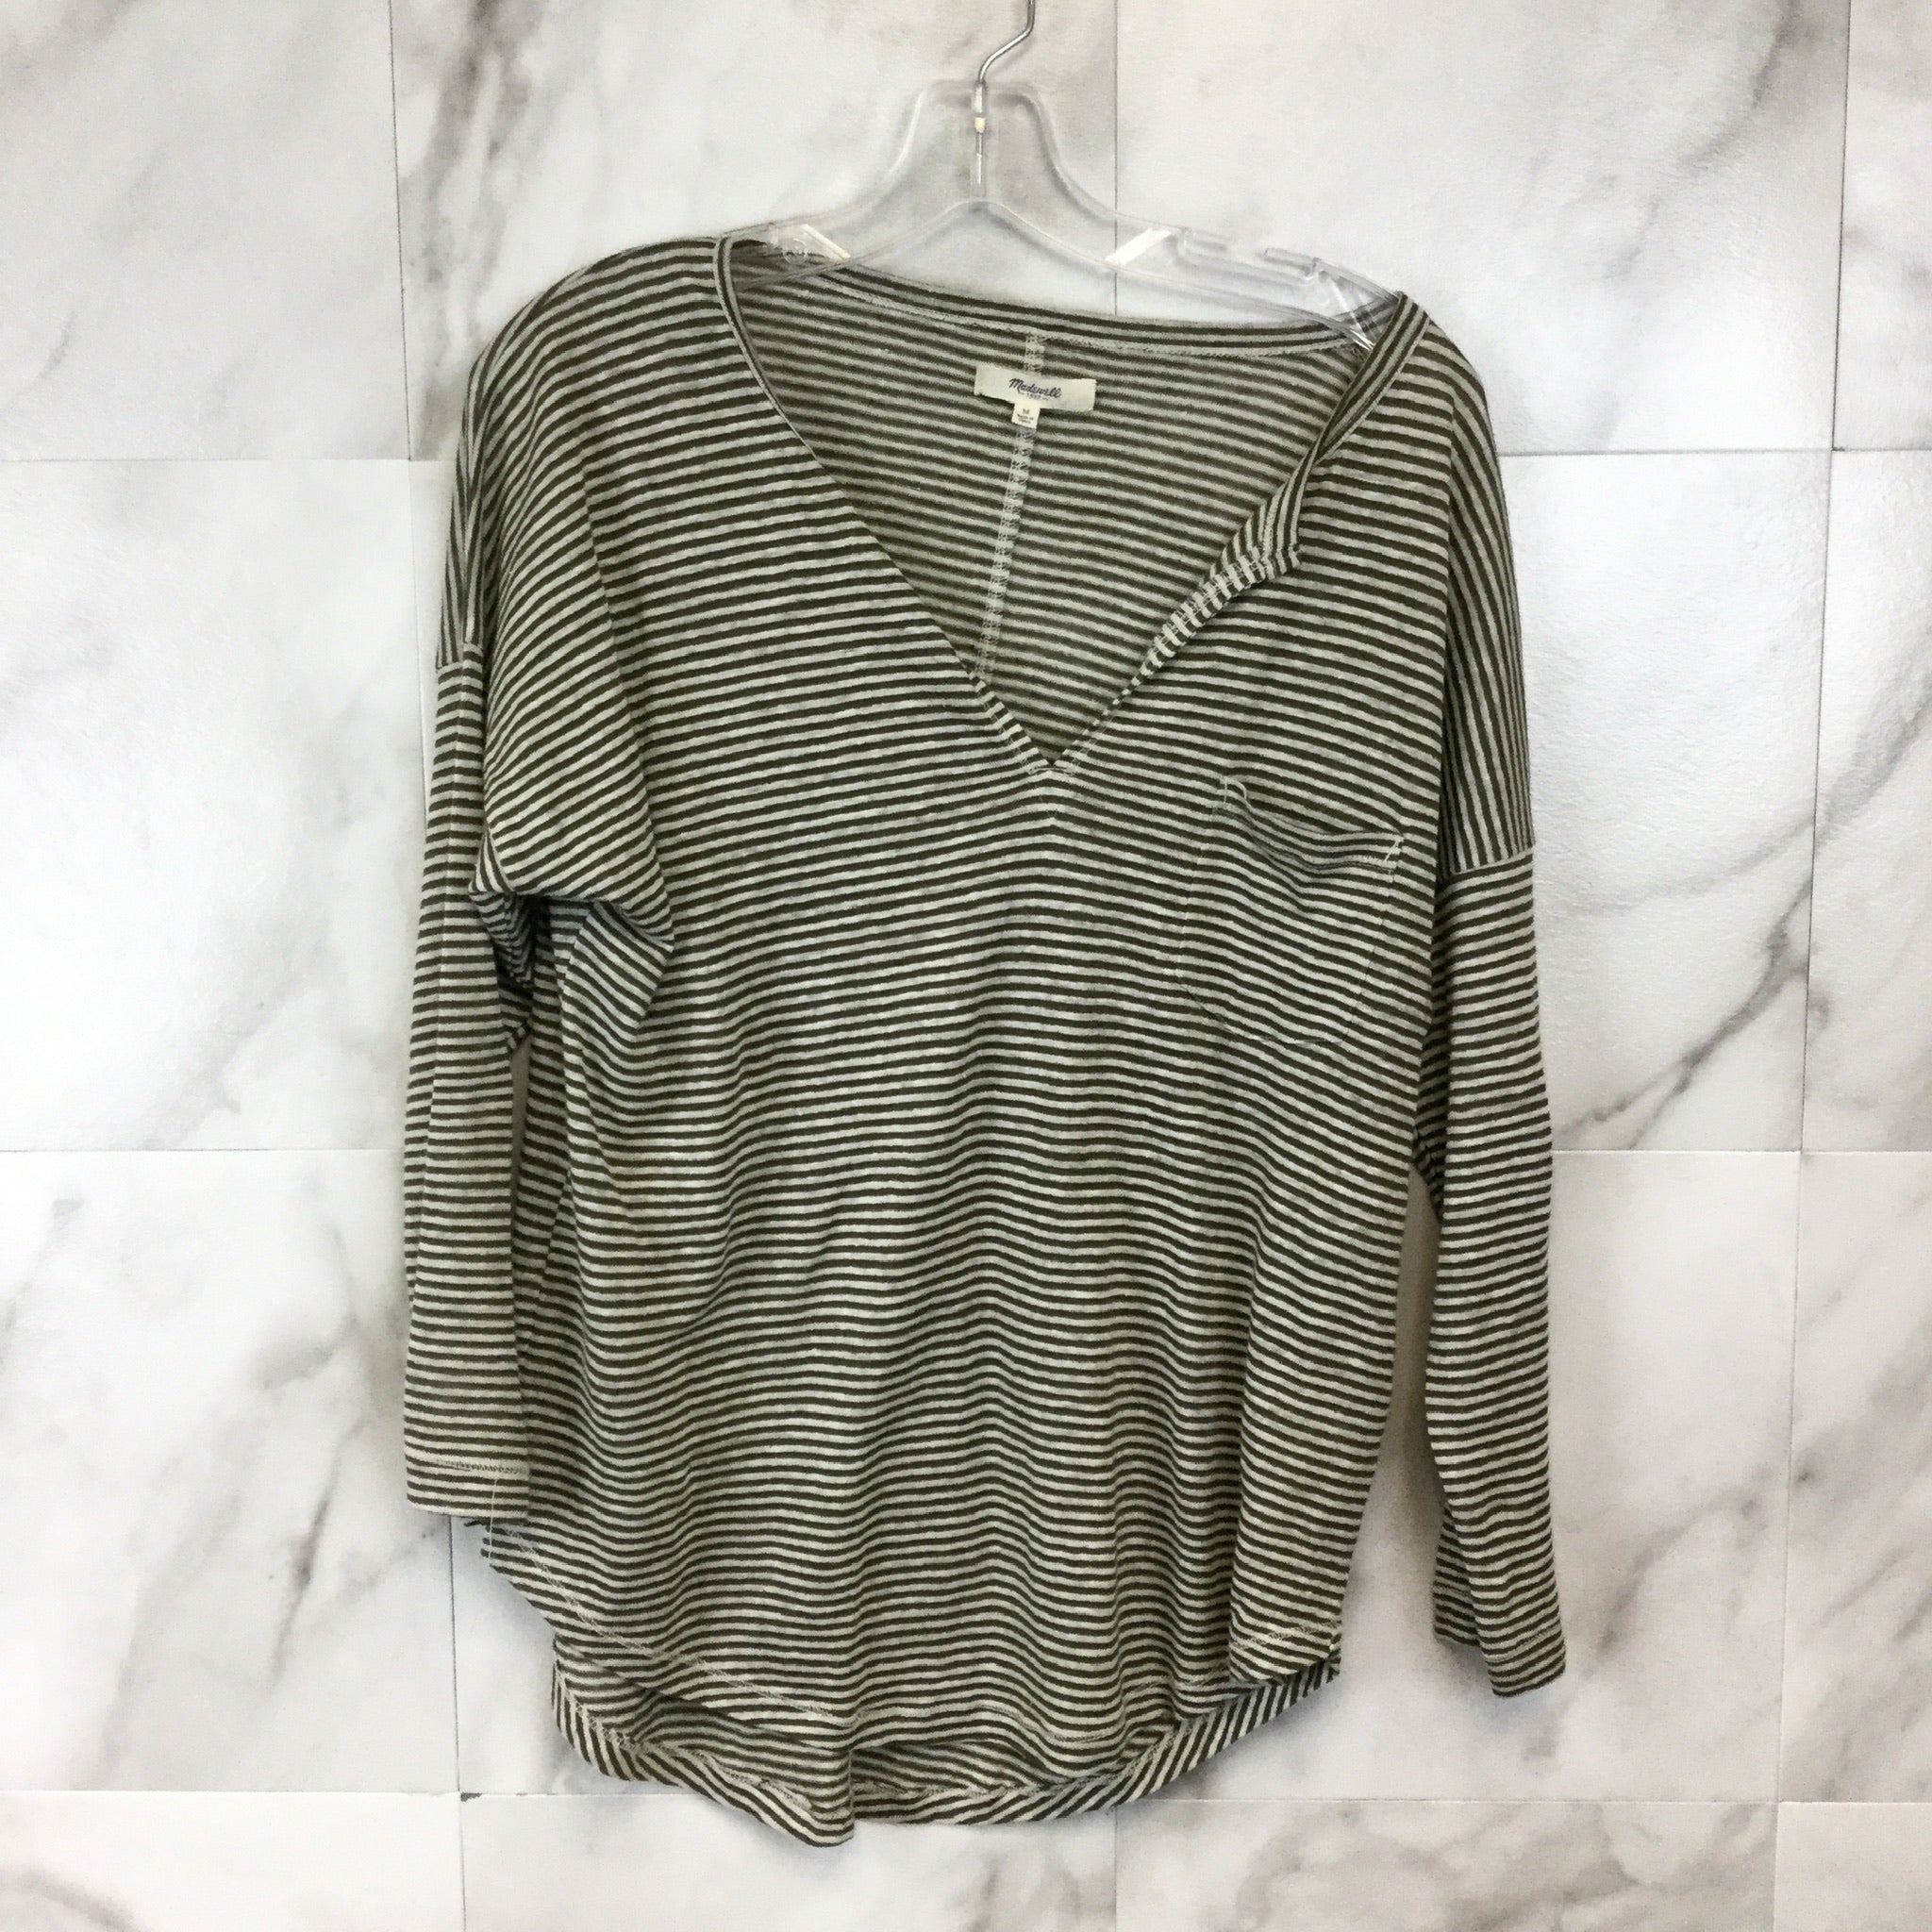 Madewell Linen Frocket Tee - Size M